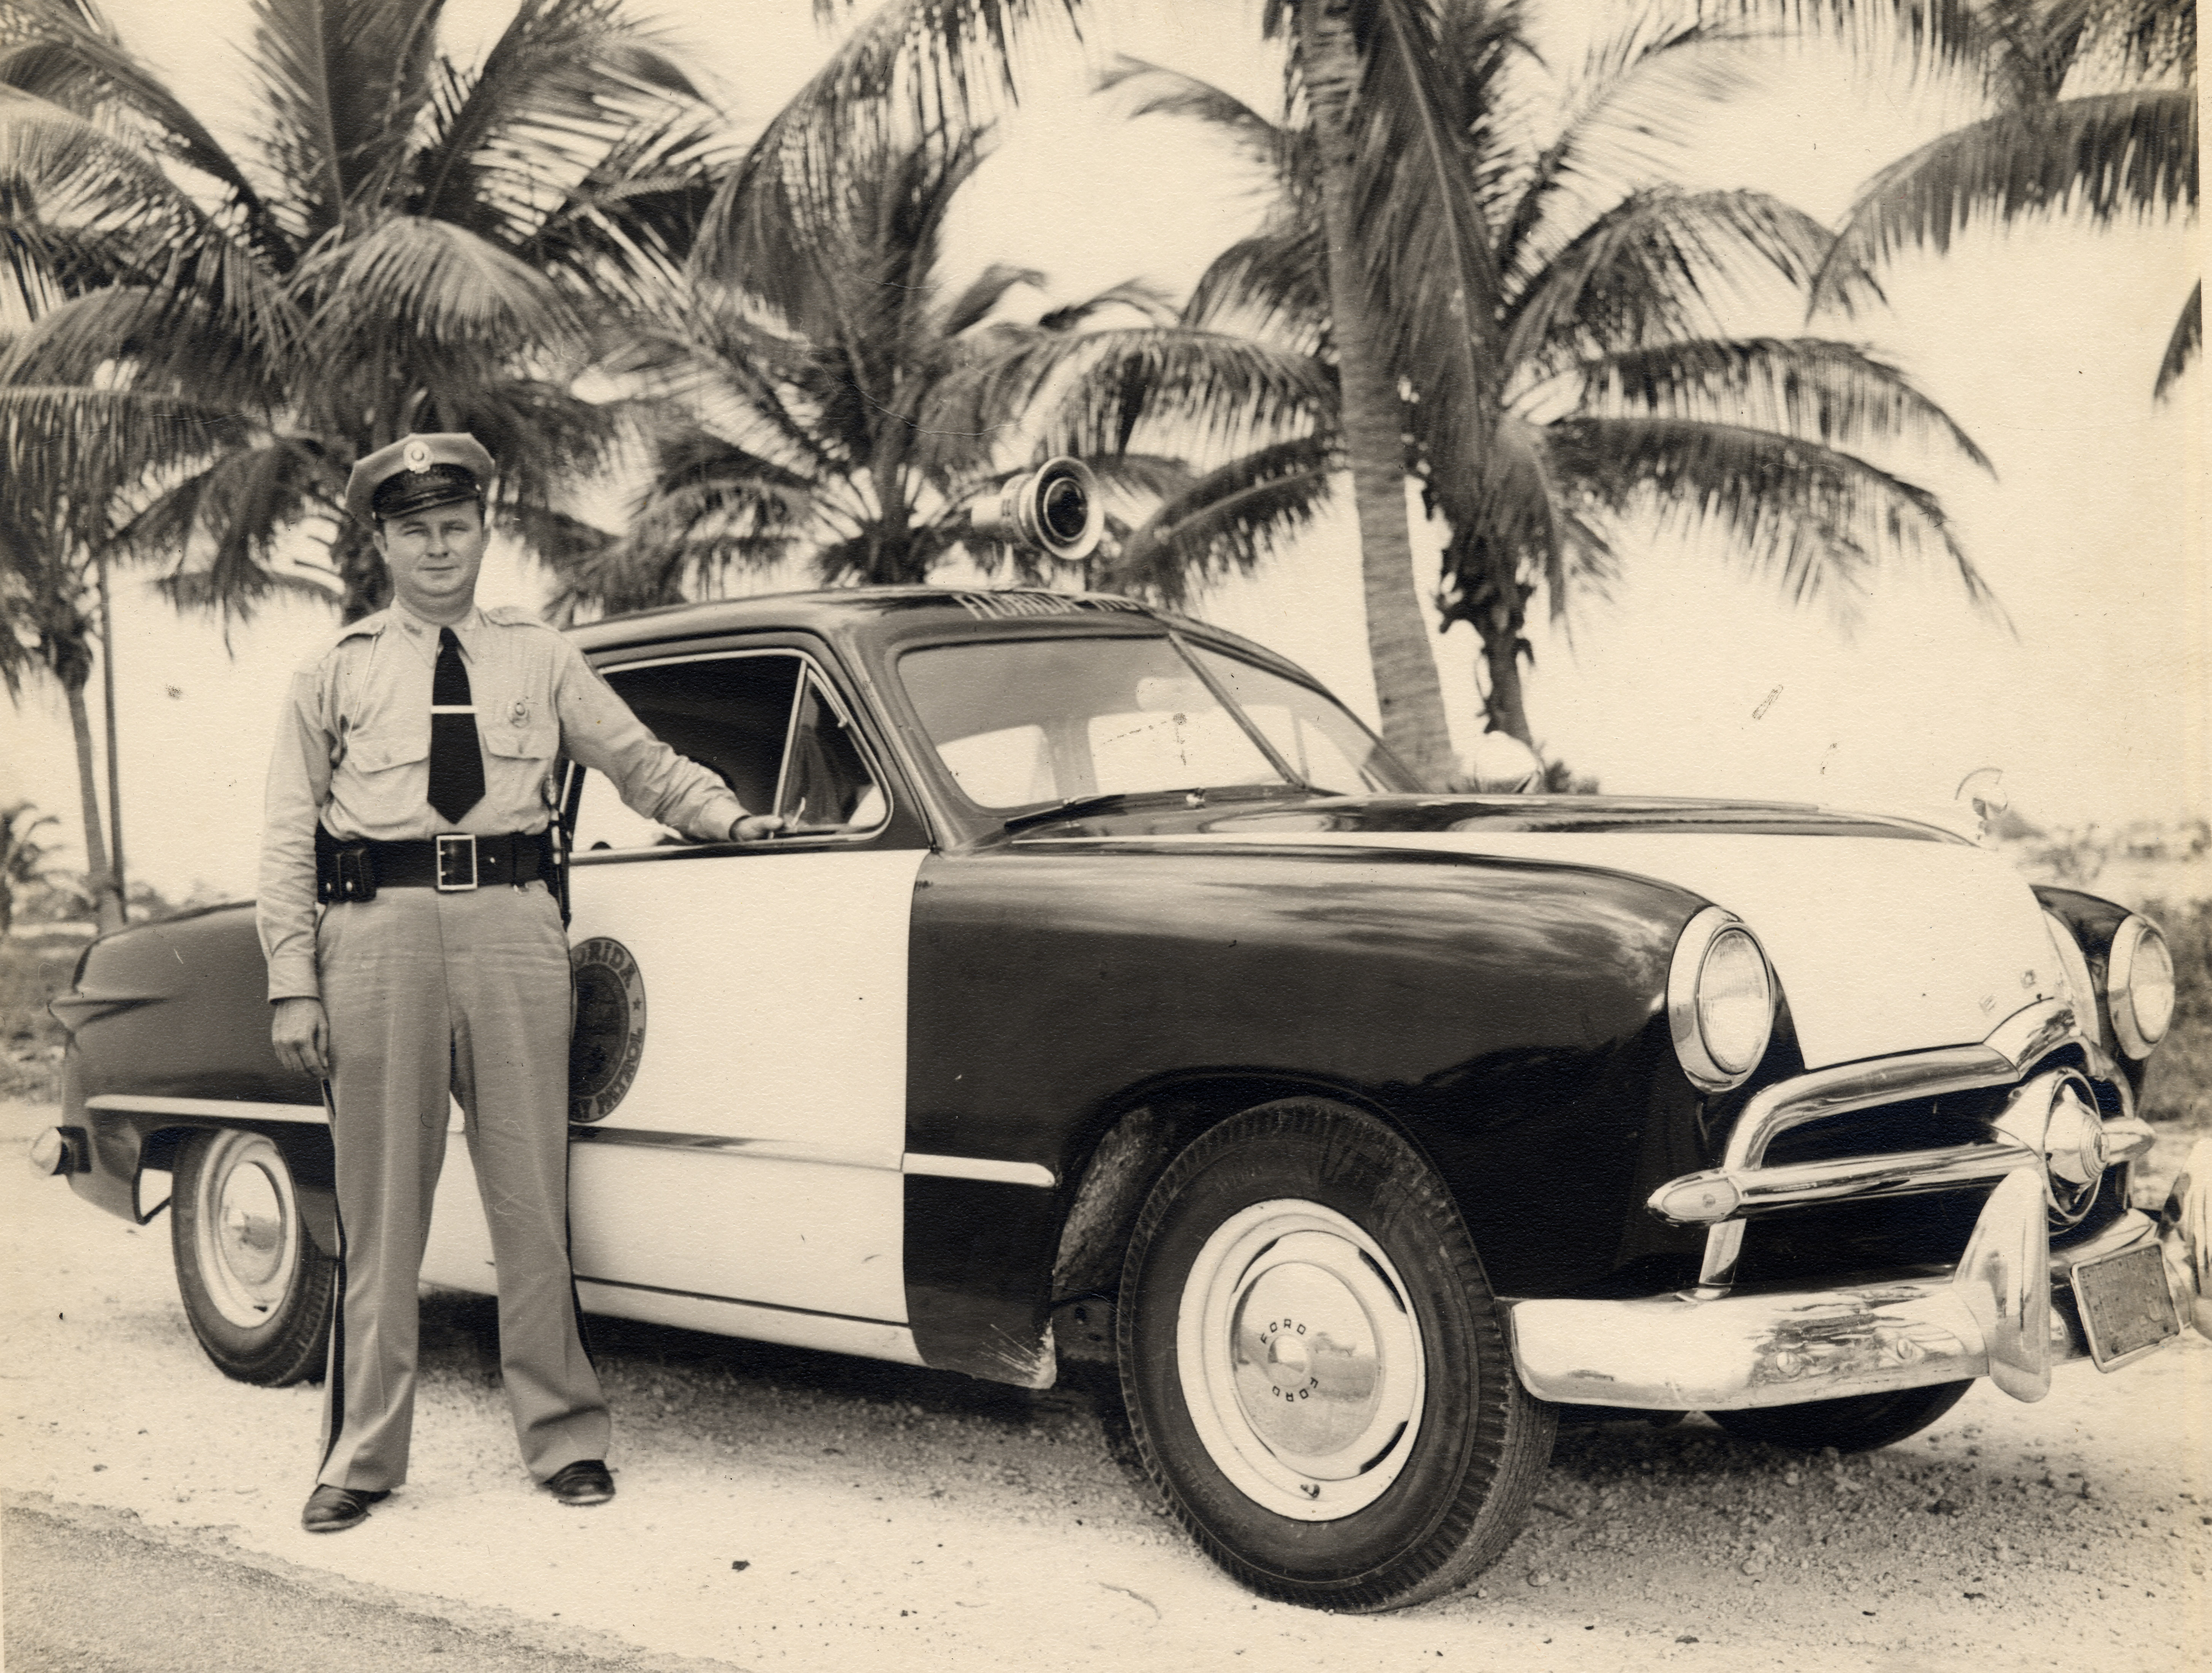 NYPD shows off its vintage patrol cars | ClassicCars.com ...  |1970 Police Cars Florida